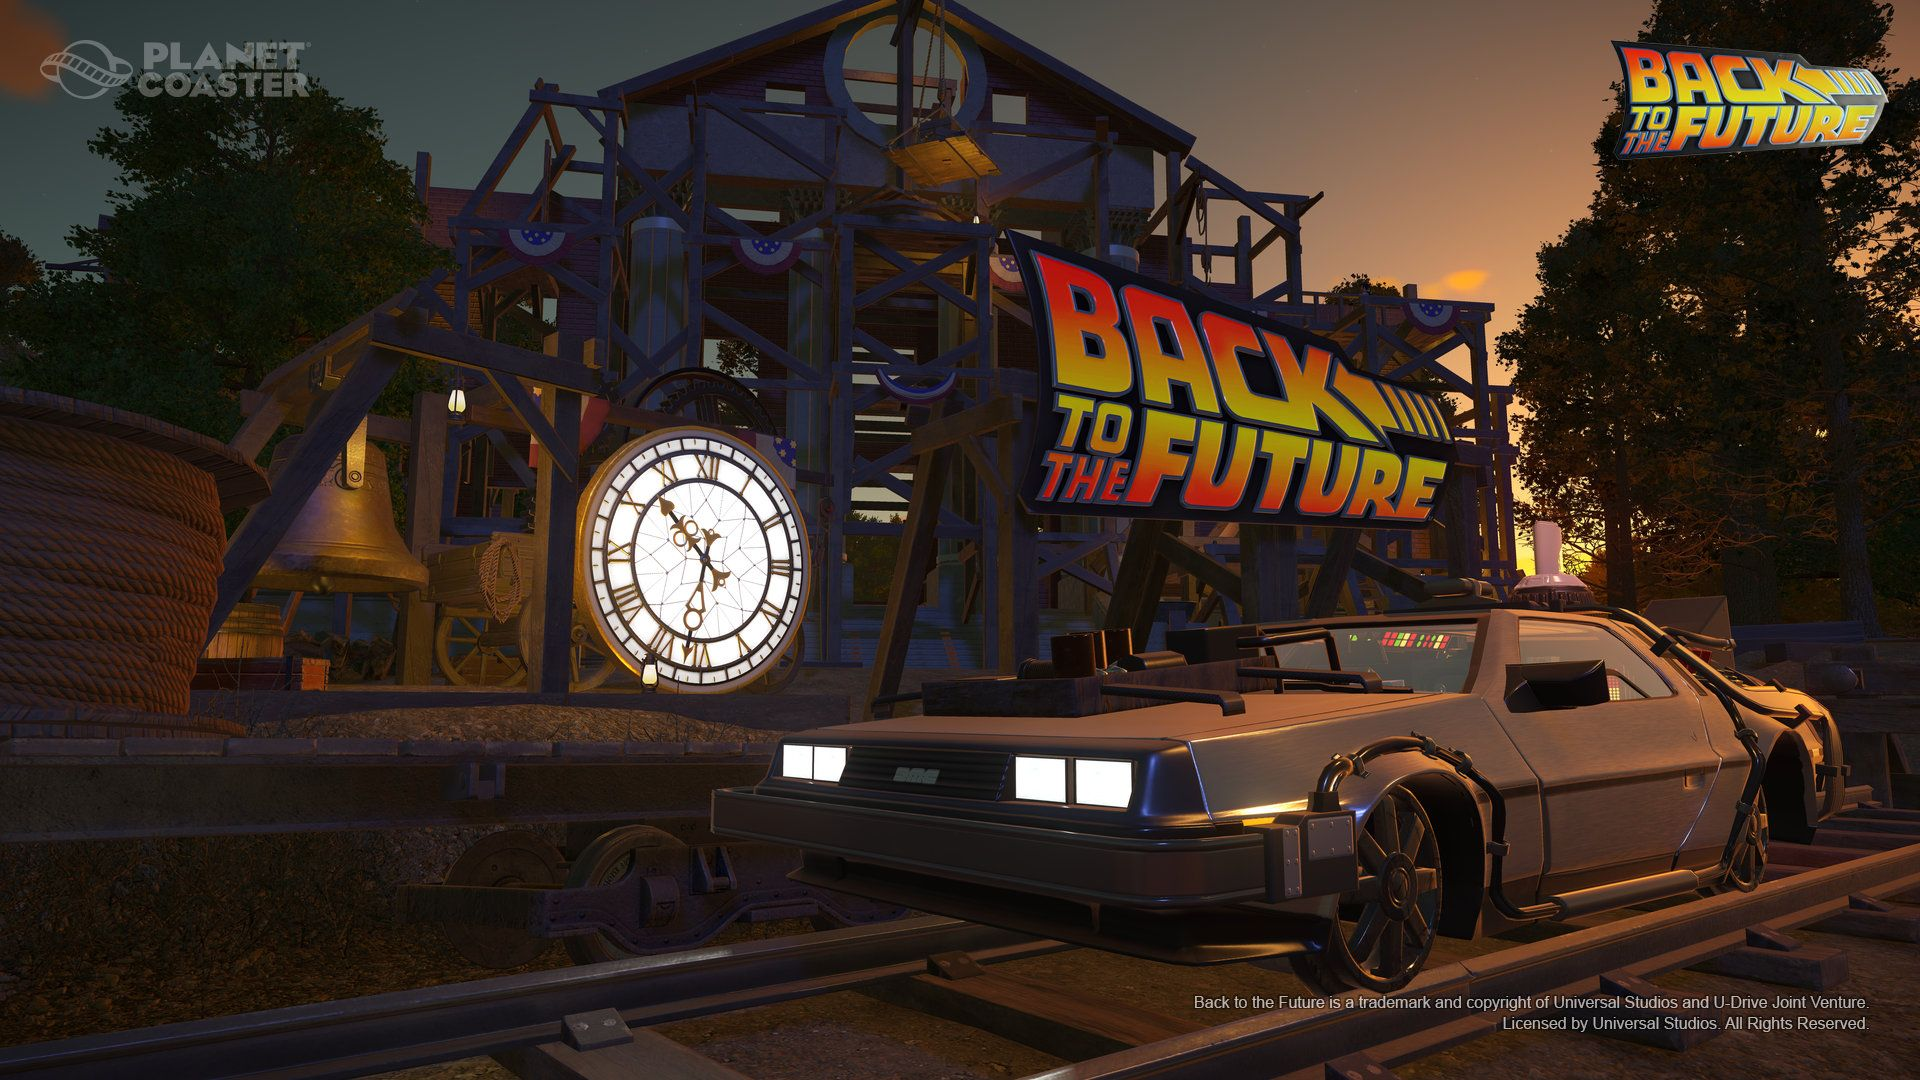 "Planet Coaster - Back to the Futureâ""¢ Time Machine Construction Kit"